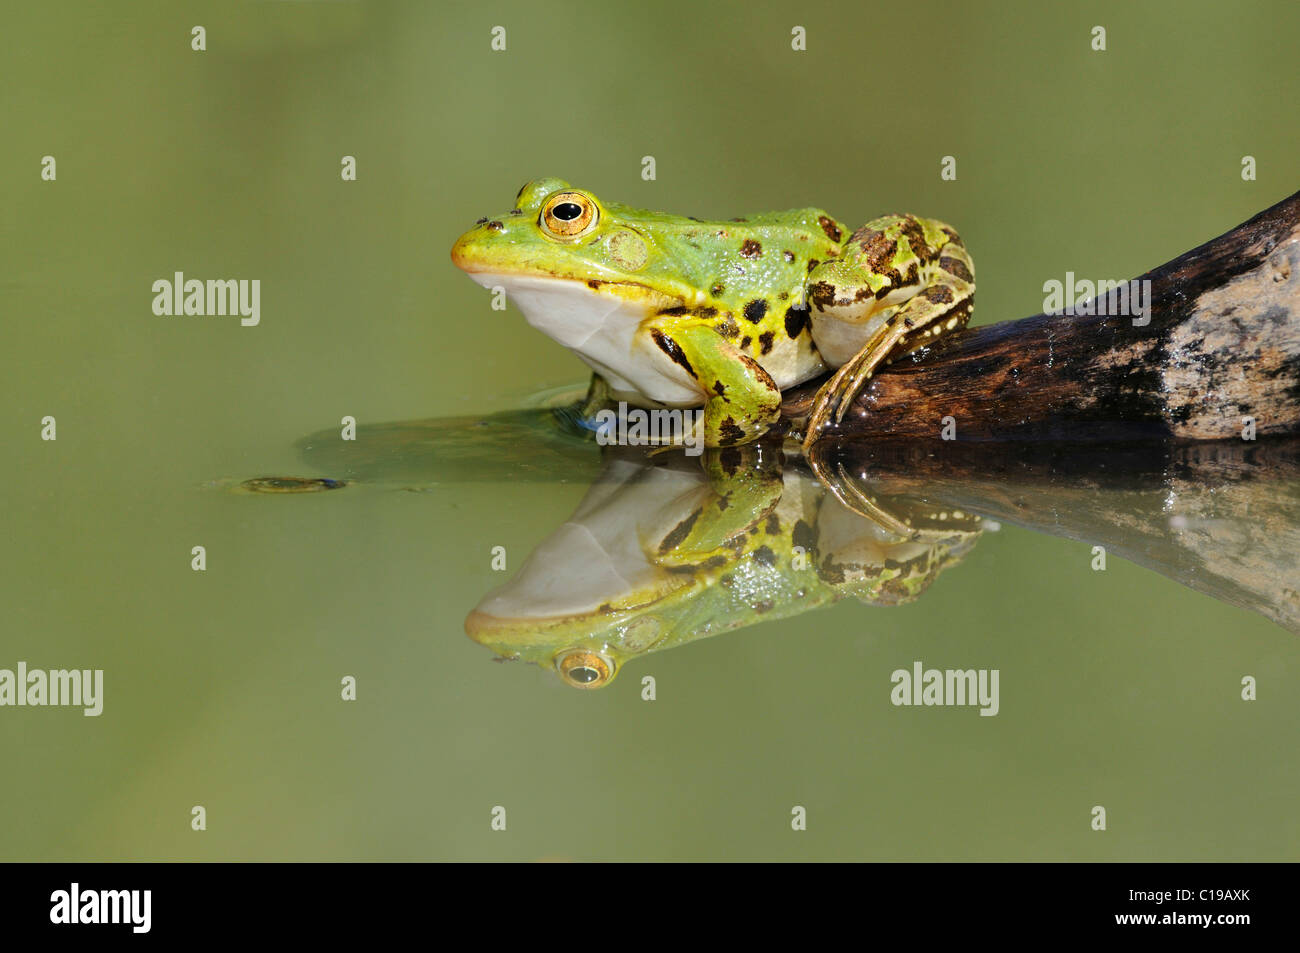 Edible Frog ( Pelophylax kl. esculentus) and reflection - Stock Image